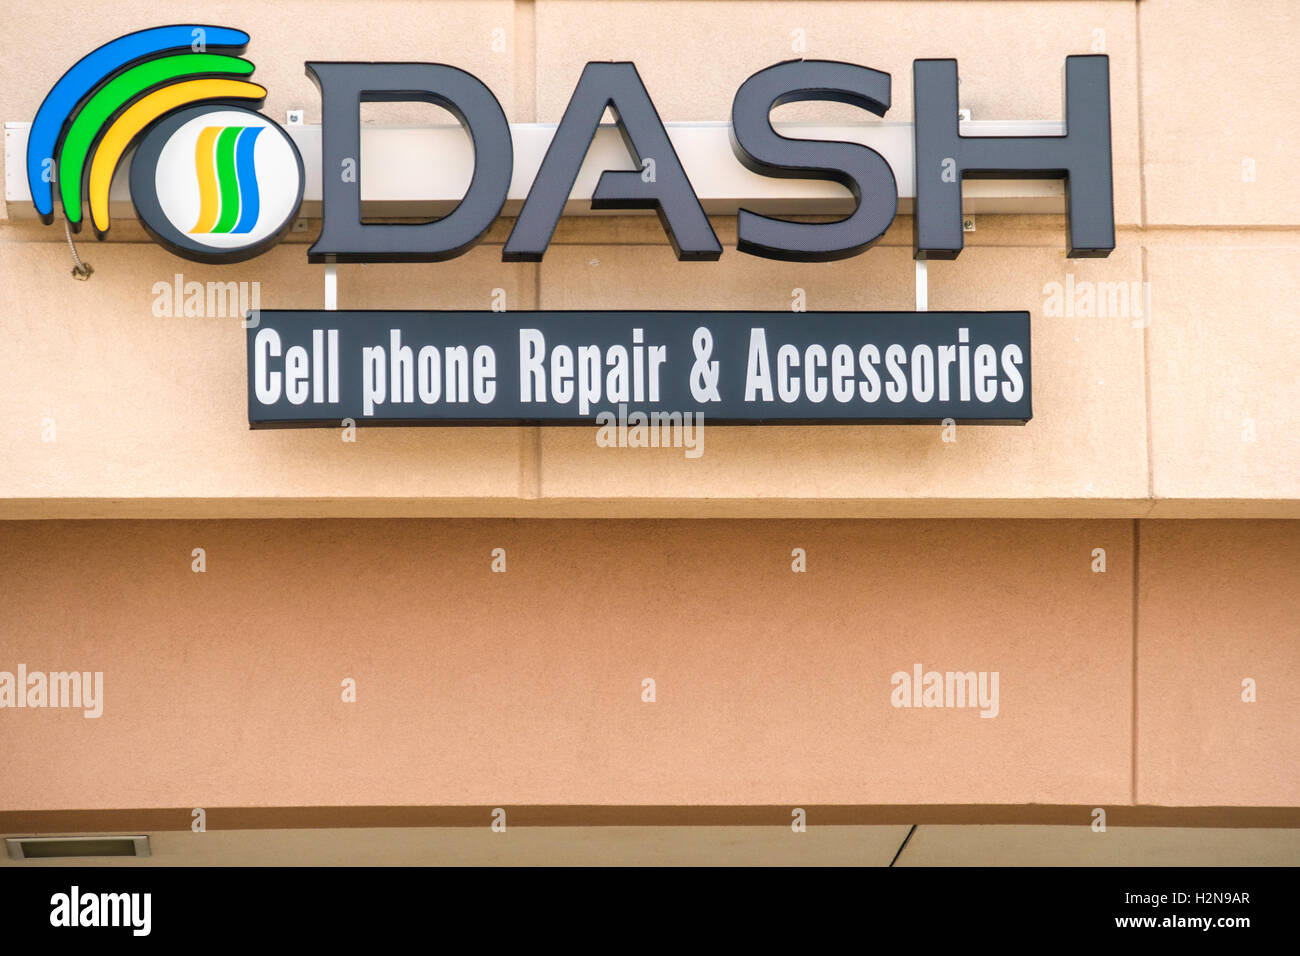 The exterior name and logo of DASH, an electronic repair